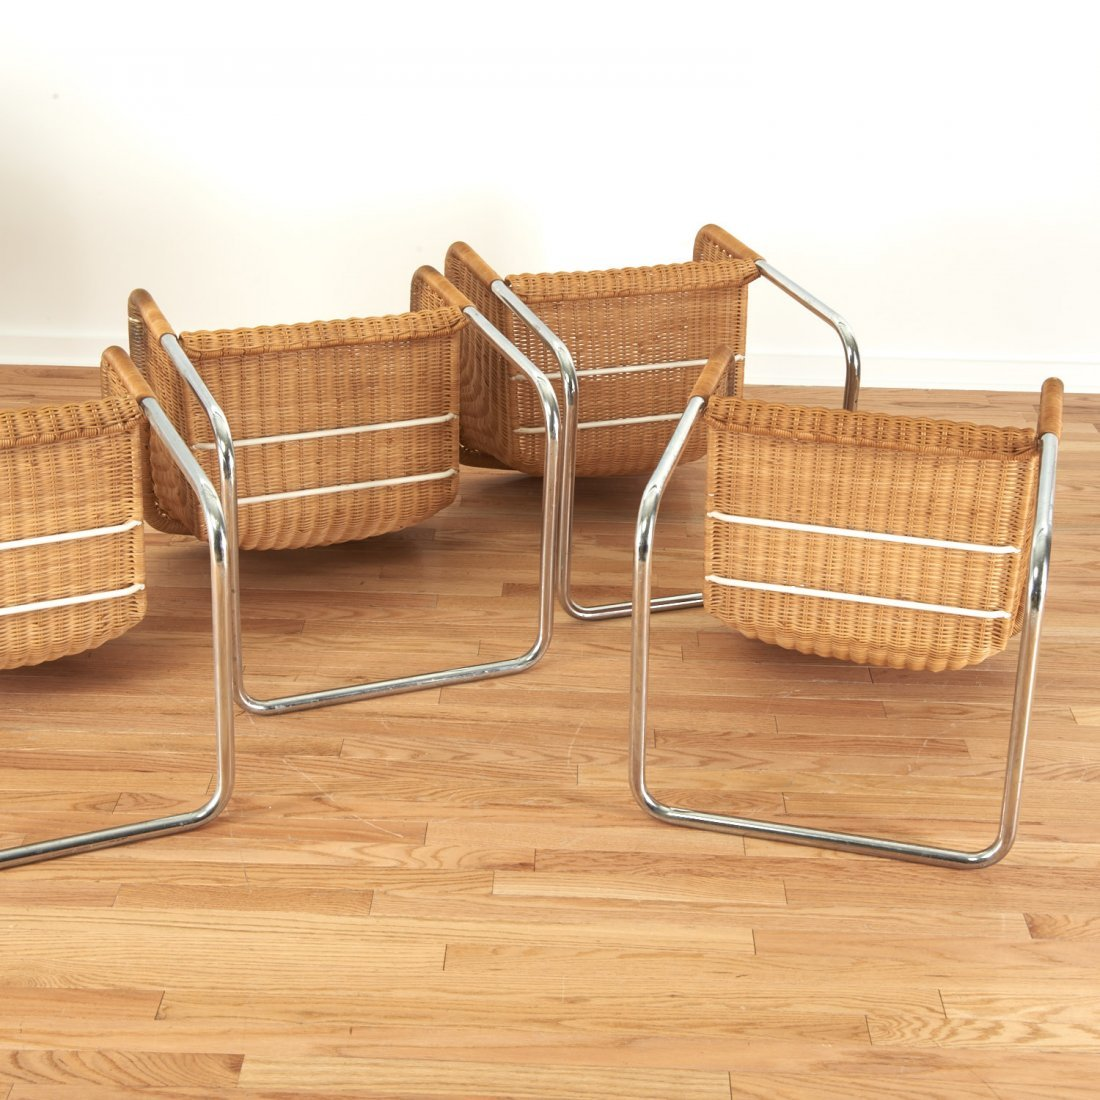 Set (6) wicker and chrome chairs by Harvey Probber - 6